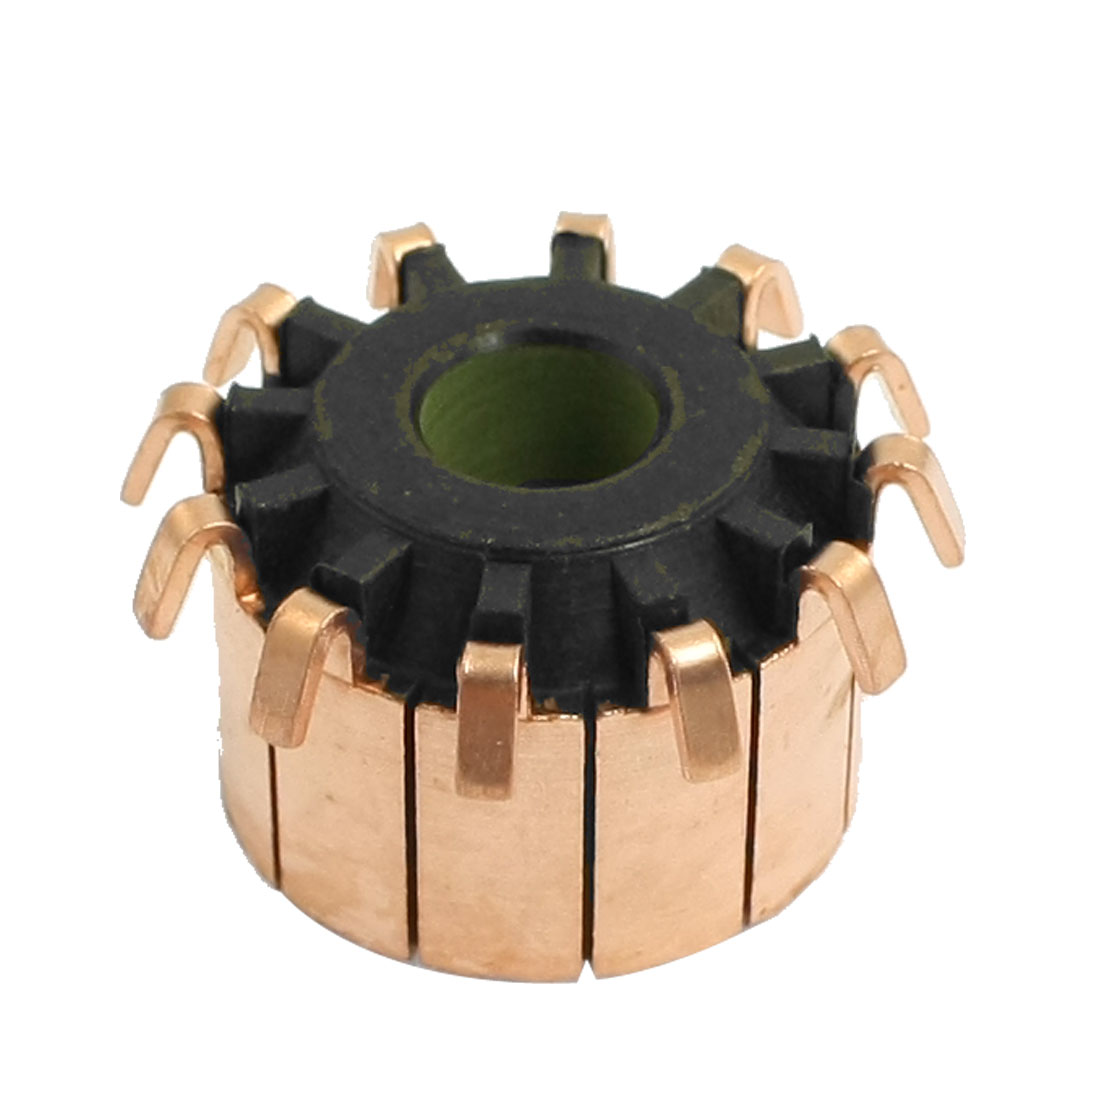 8mm-x-23mm-x-16mm-12-Gear-Tooth-Copper-Shell-Mounted-On-Armature-Commutator